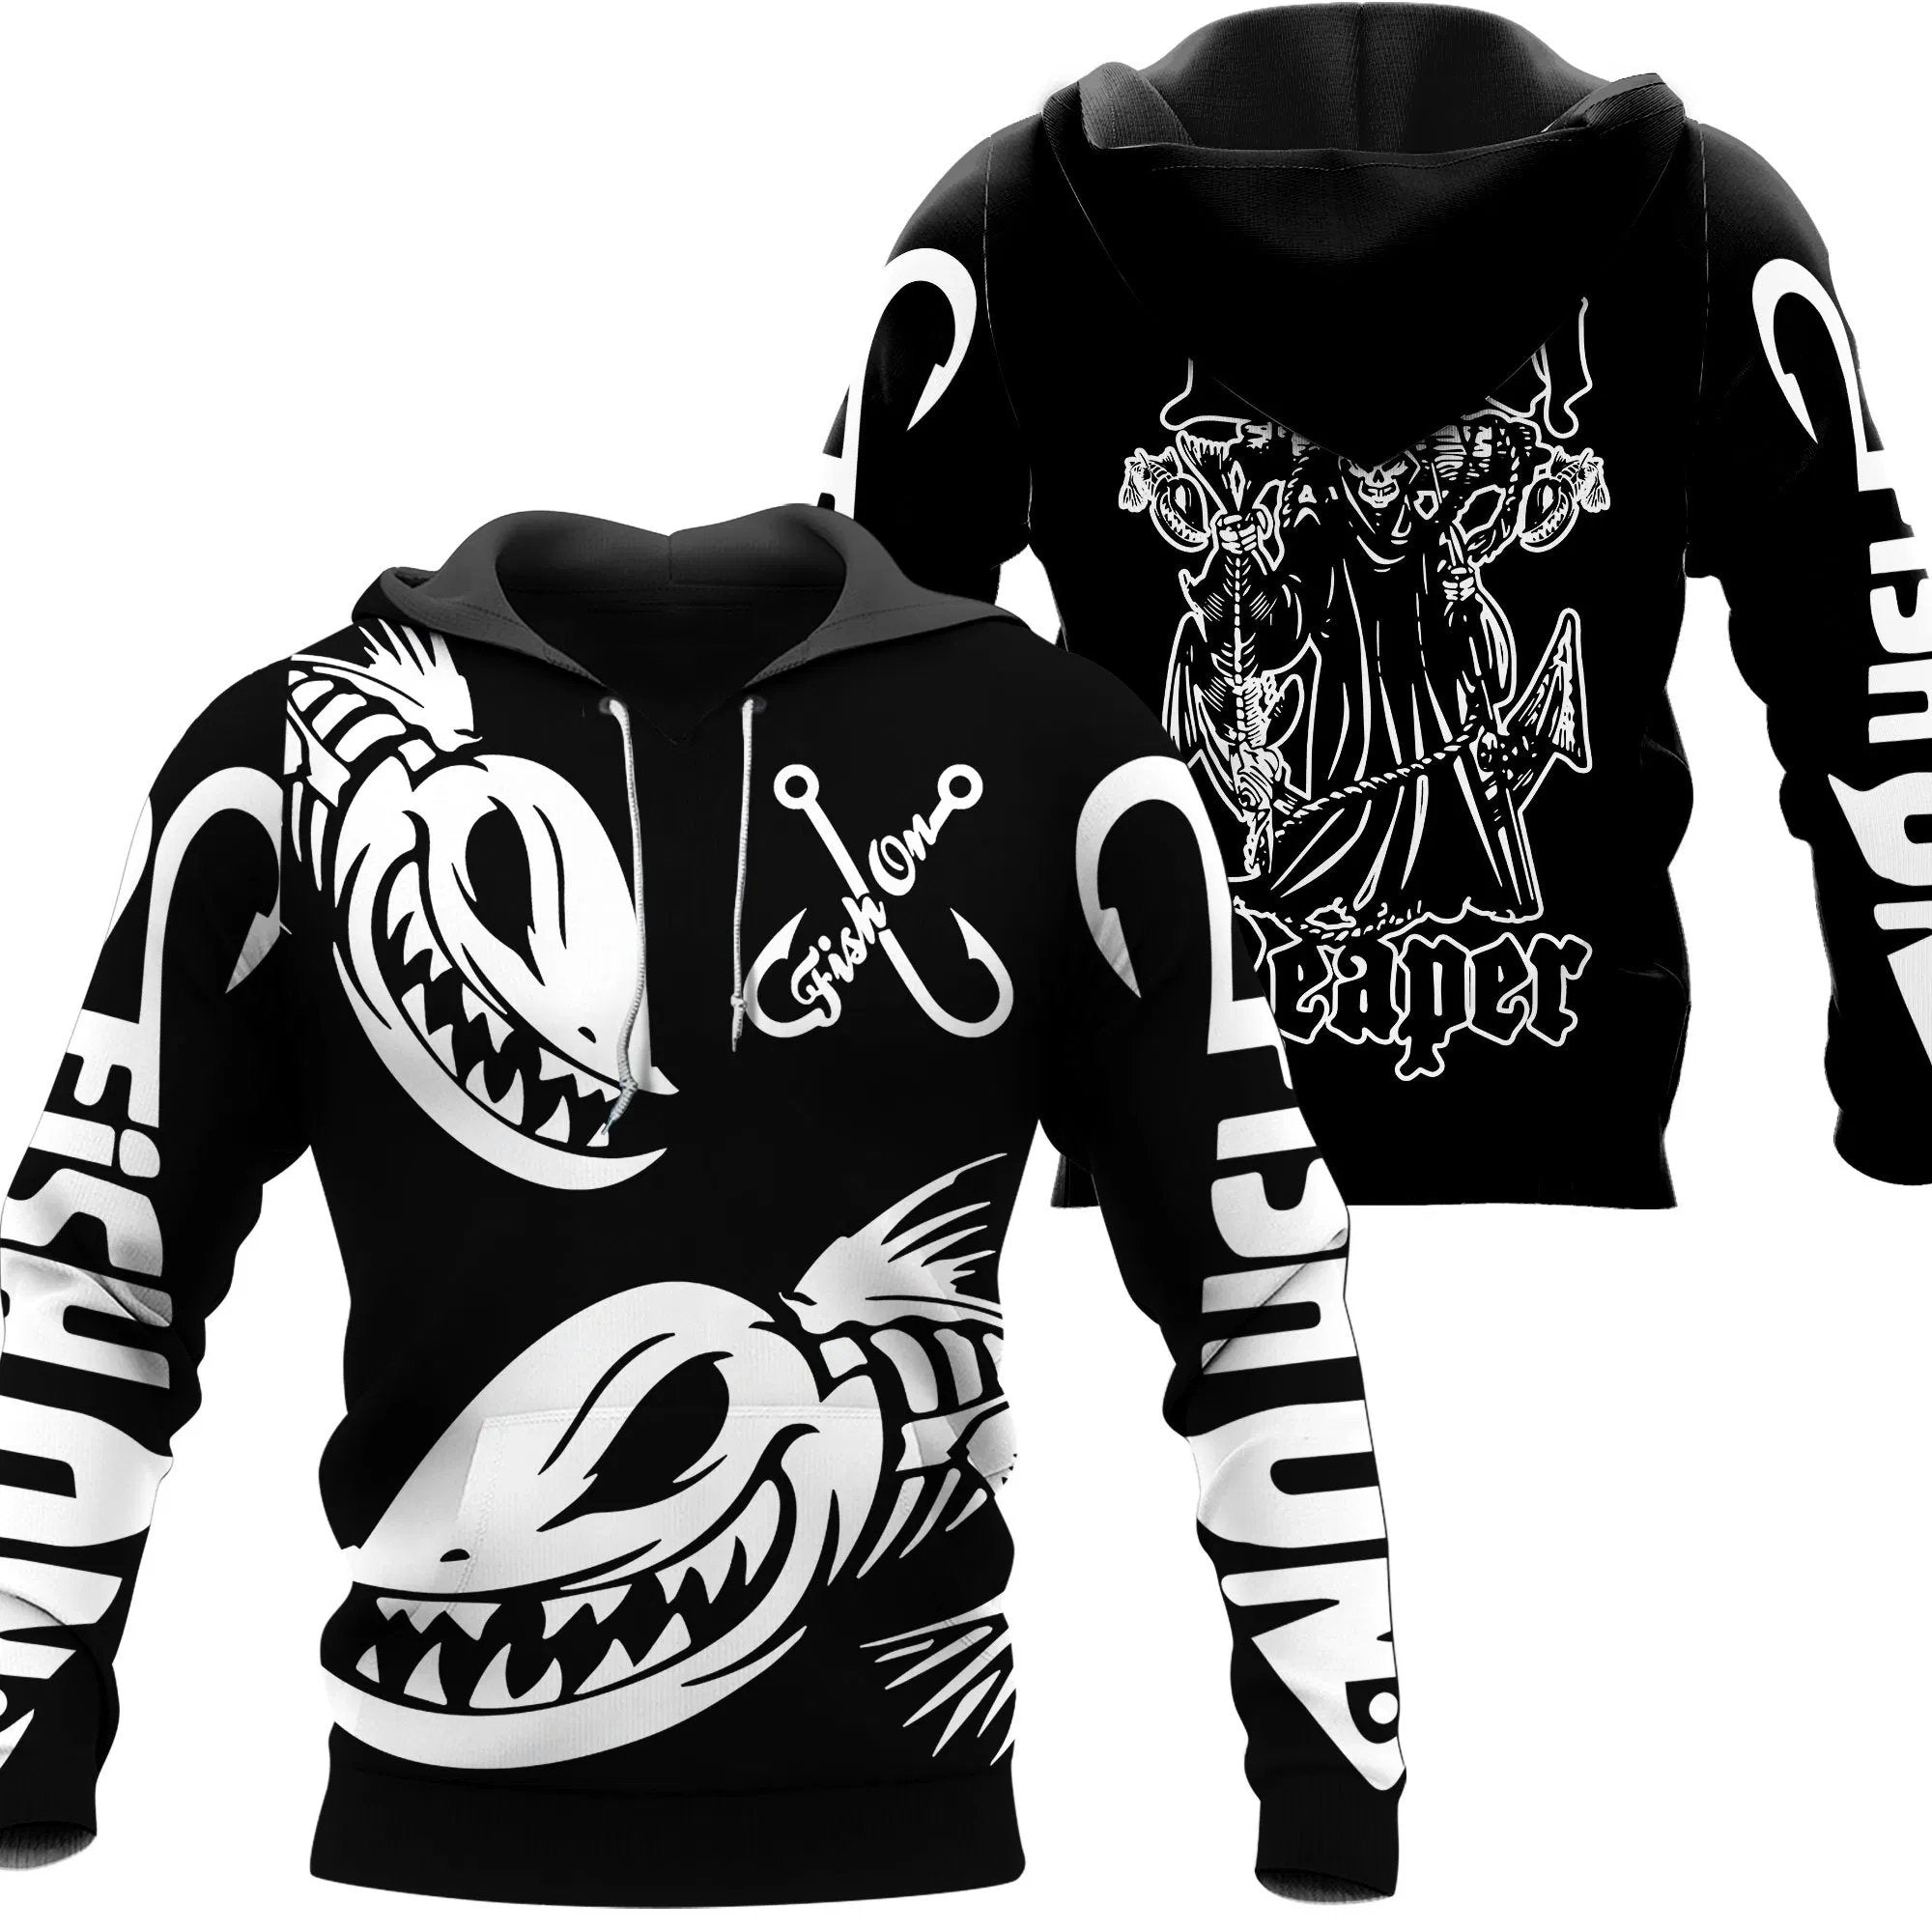 Fish Reaper hoodie. Black with white text. Two big angry fish on front.